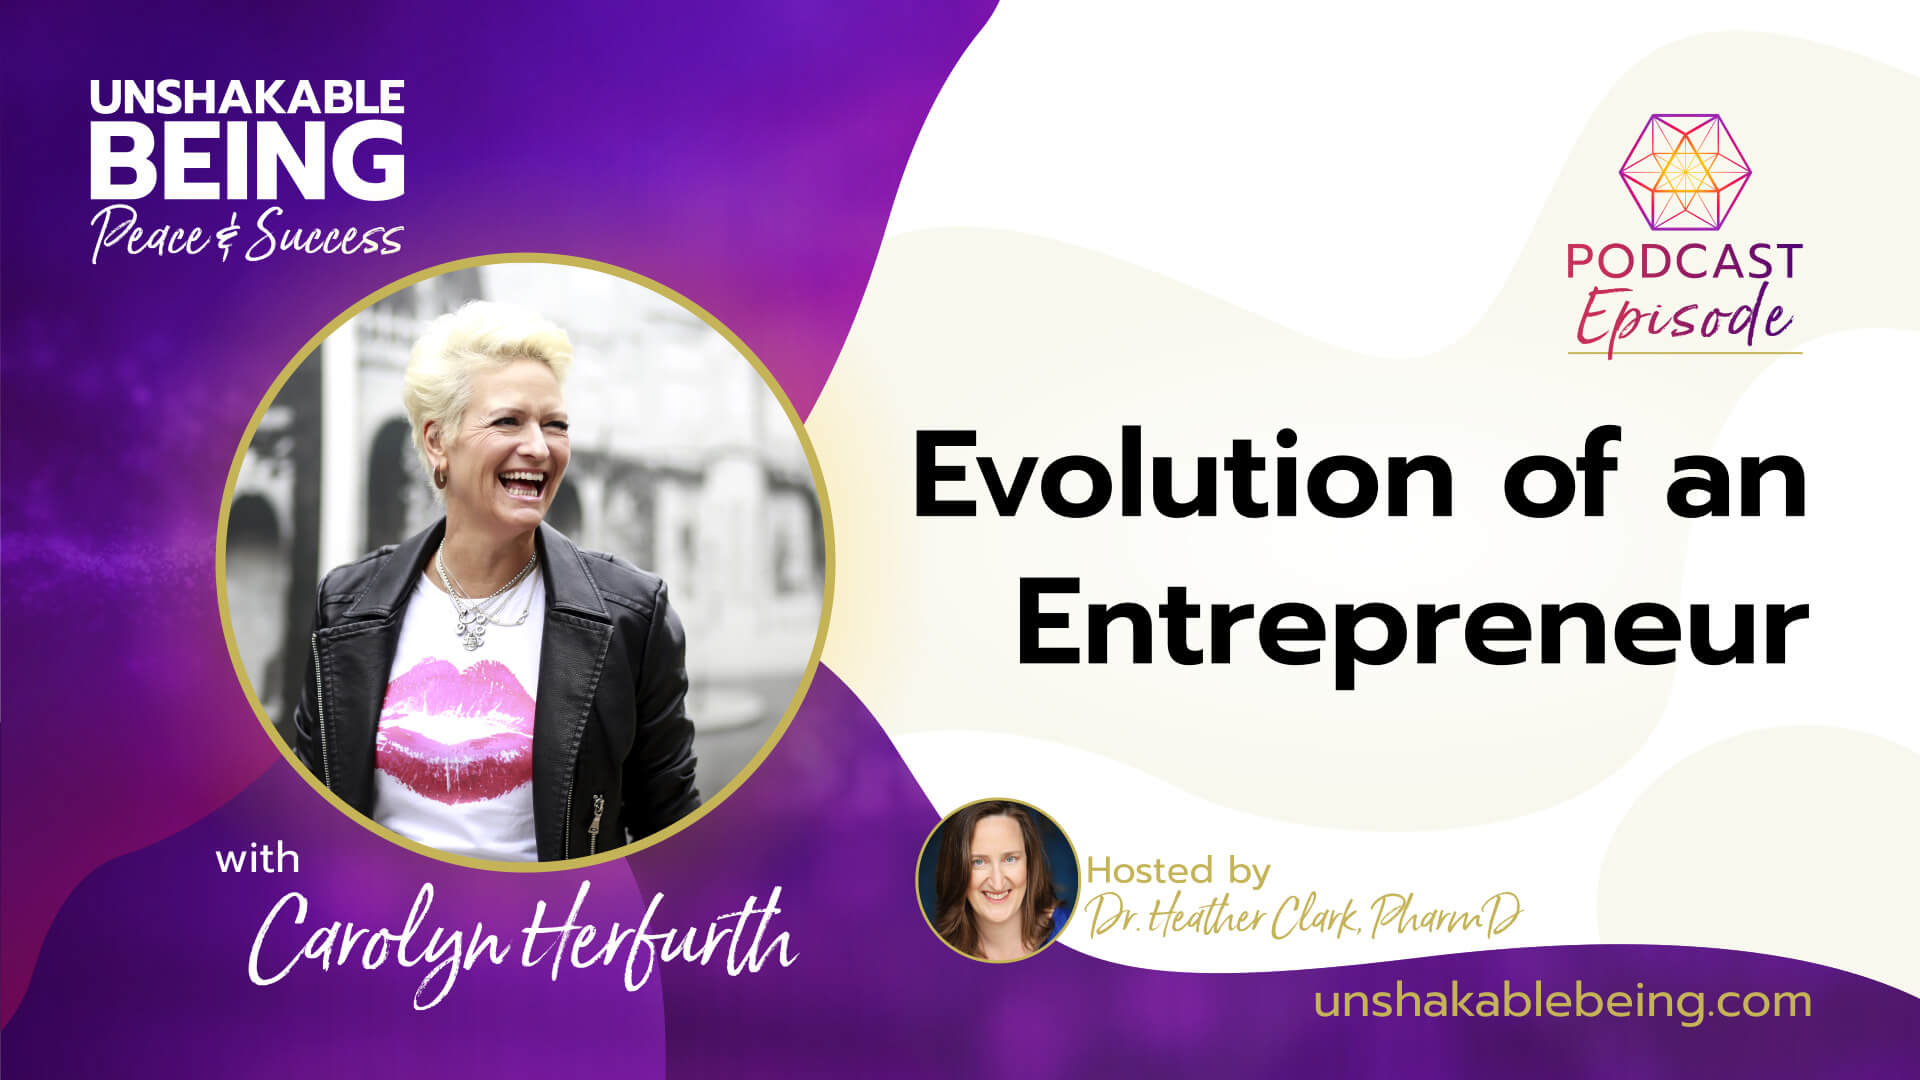 Evolution of an Entrepreneur | Carolyn Herfurth